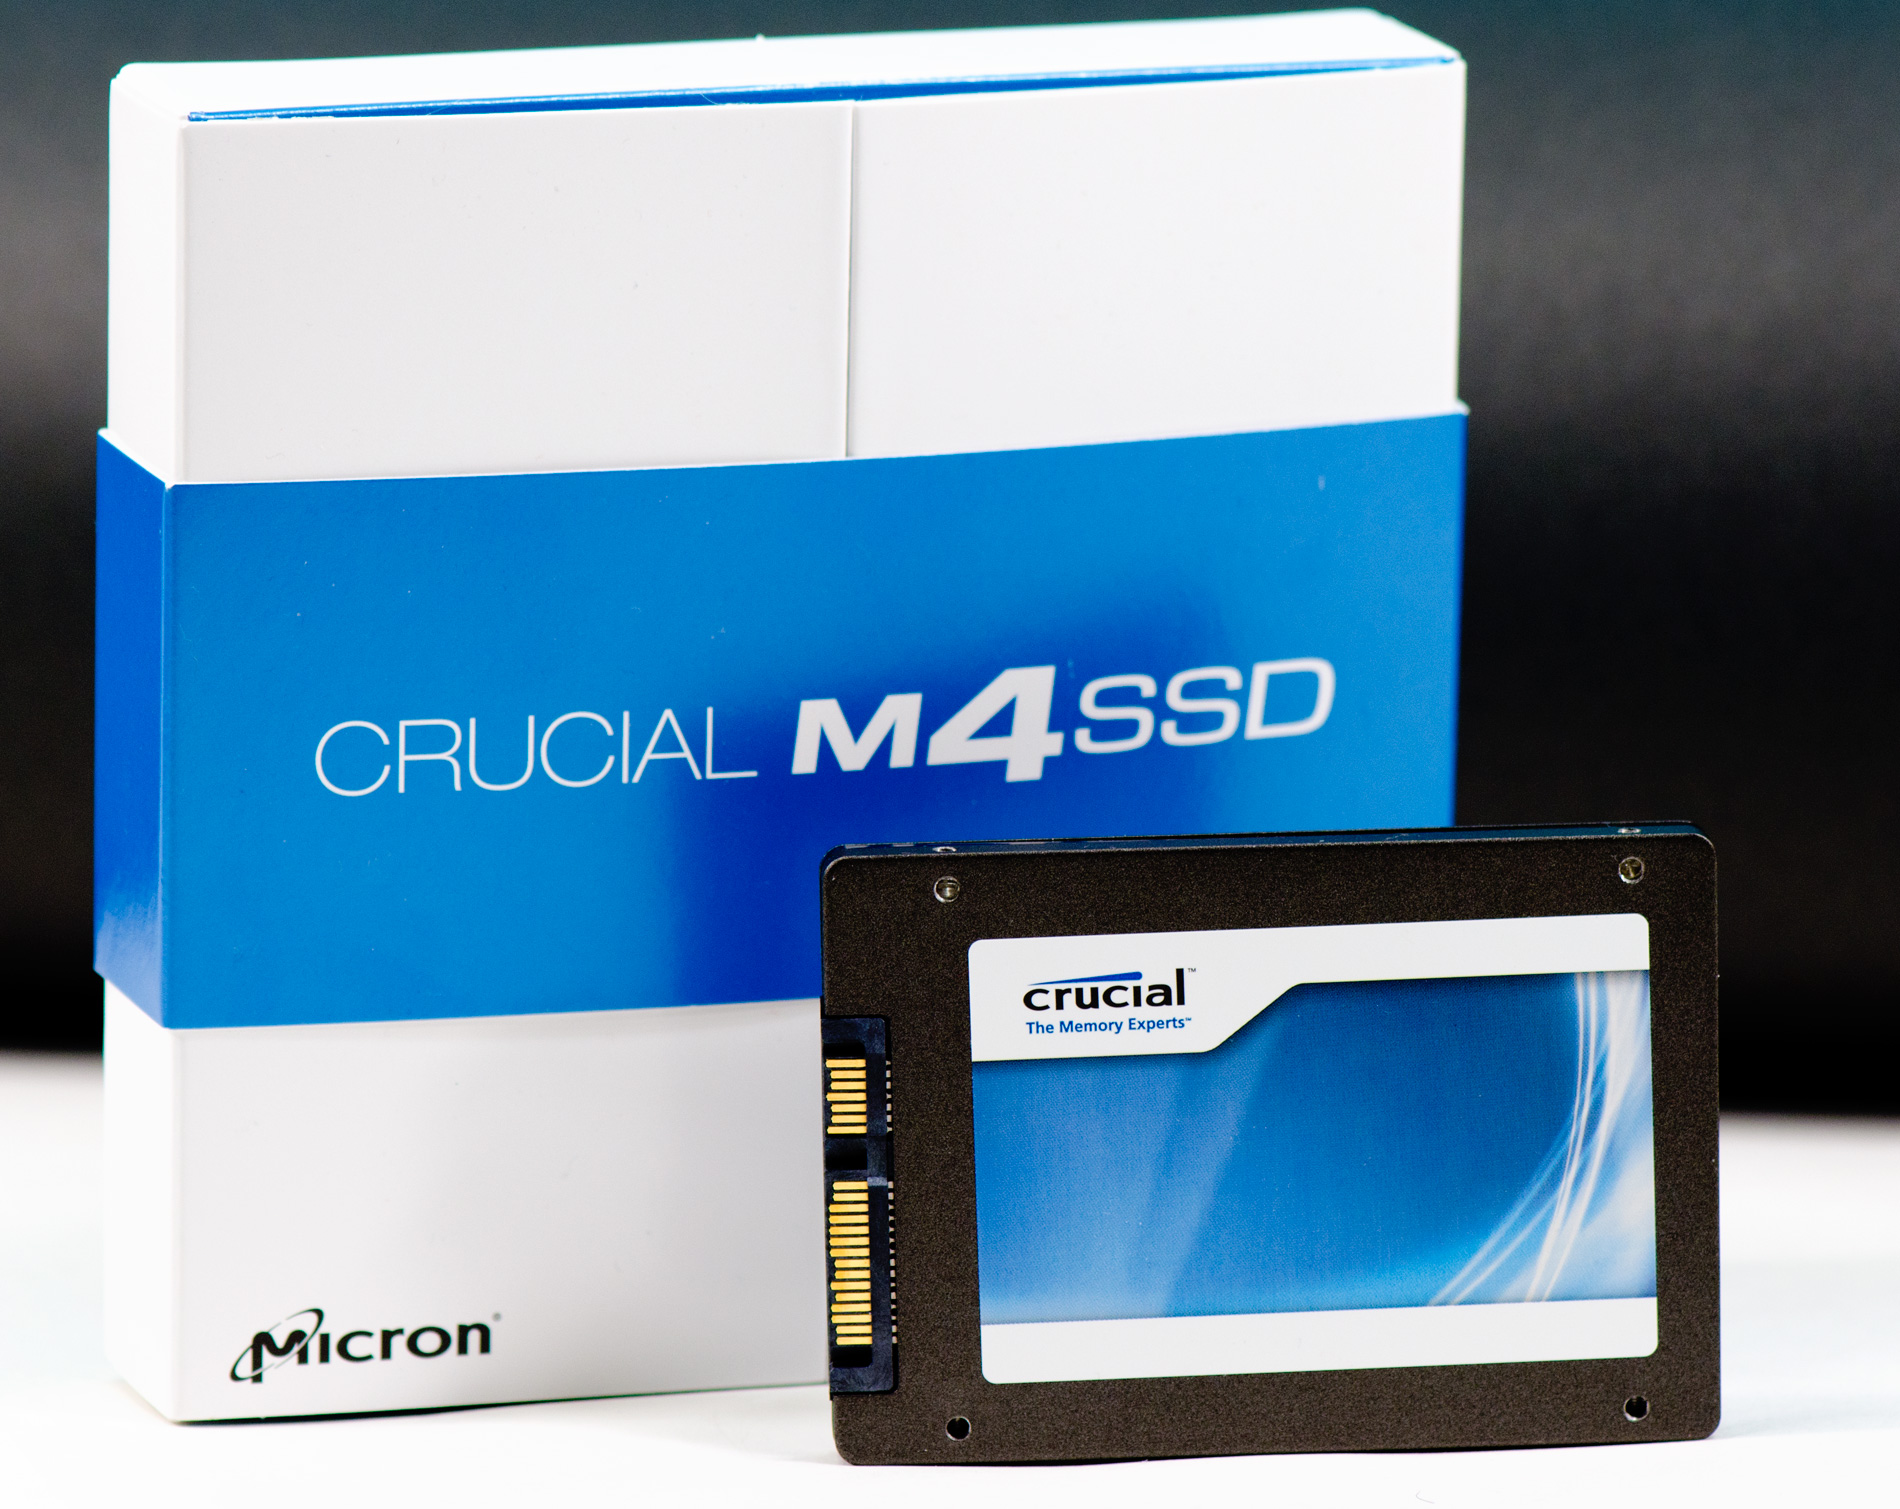 crucial ssd how to update firmware